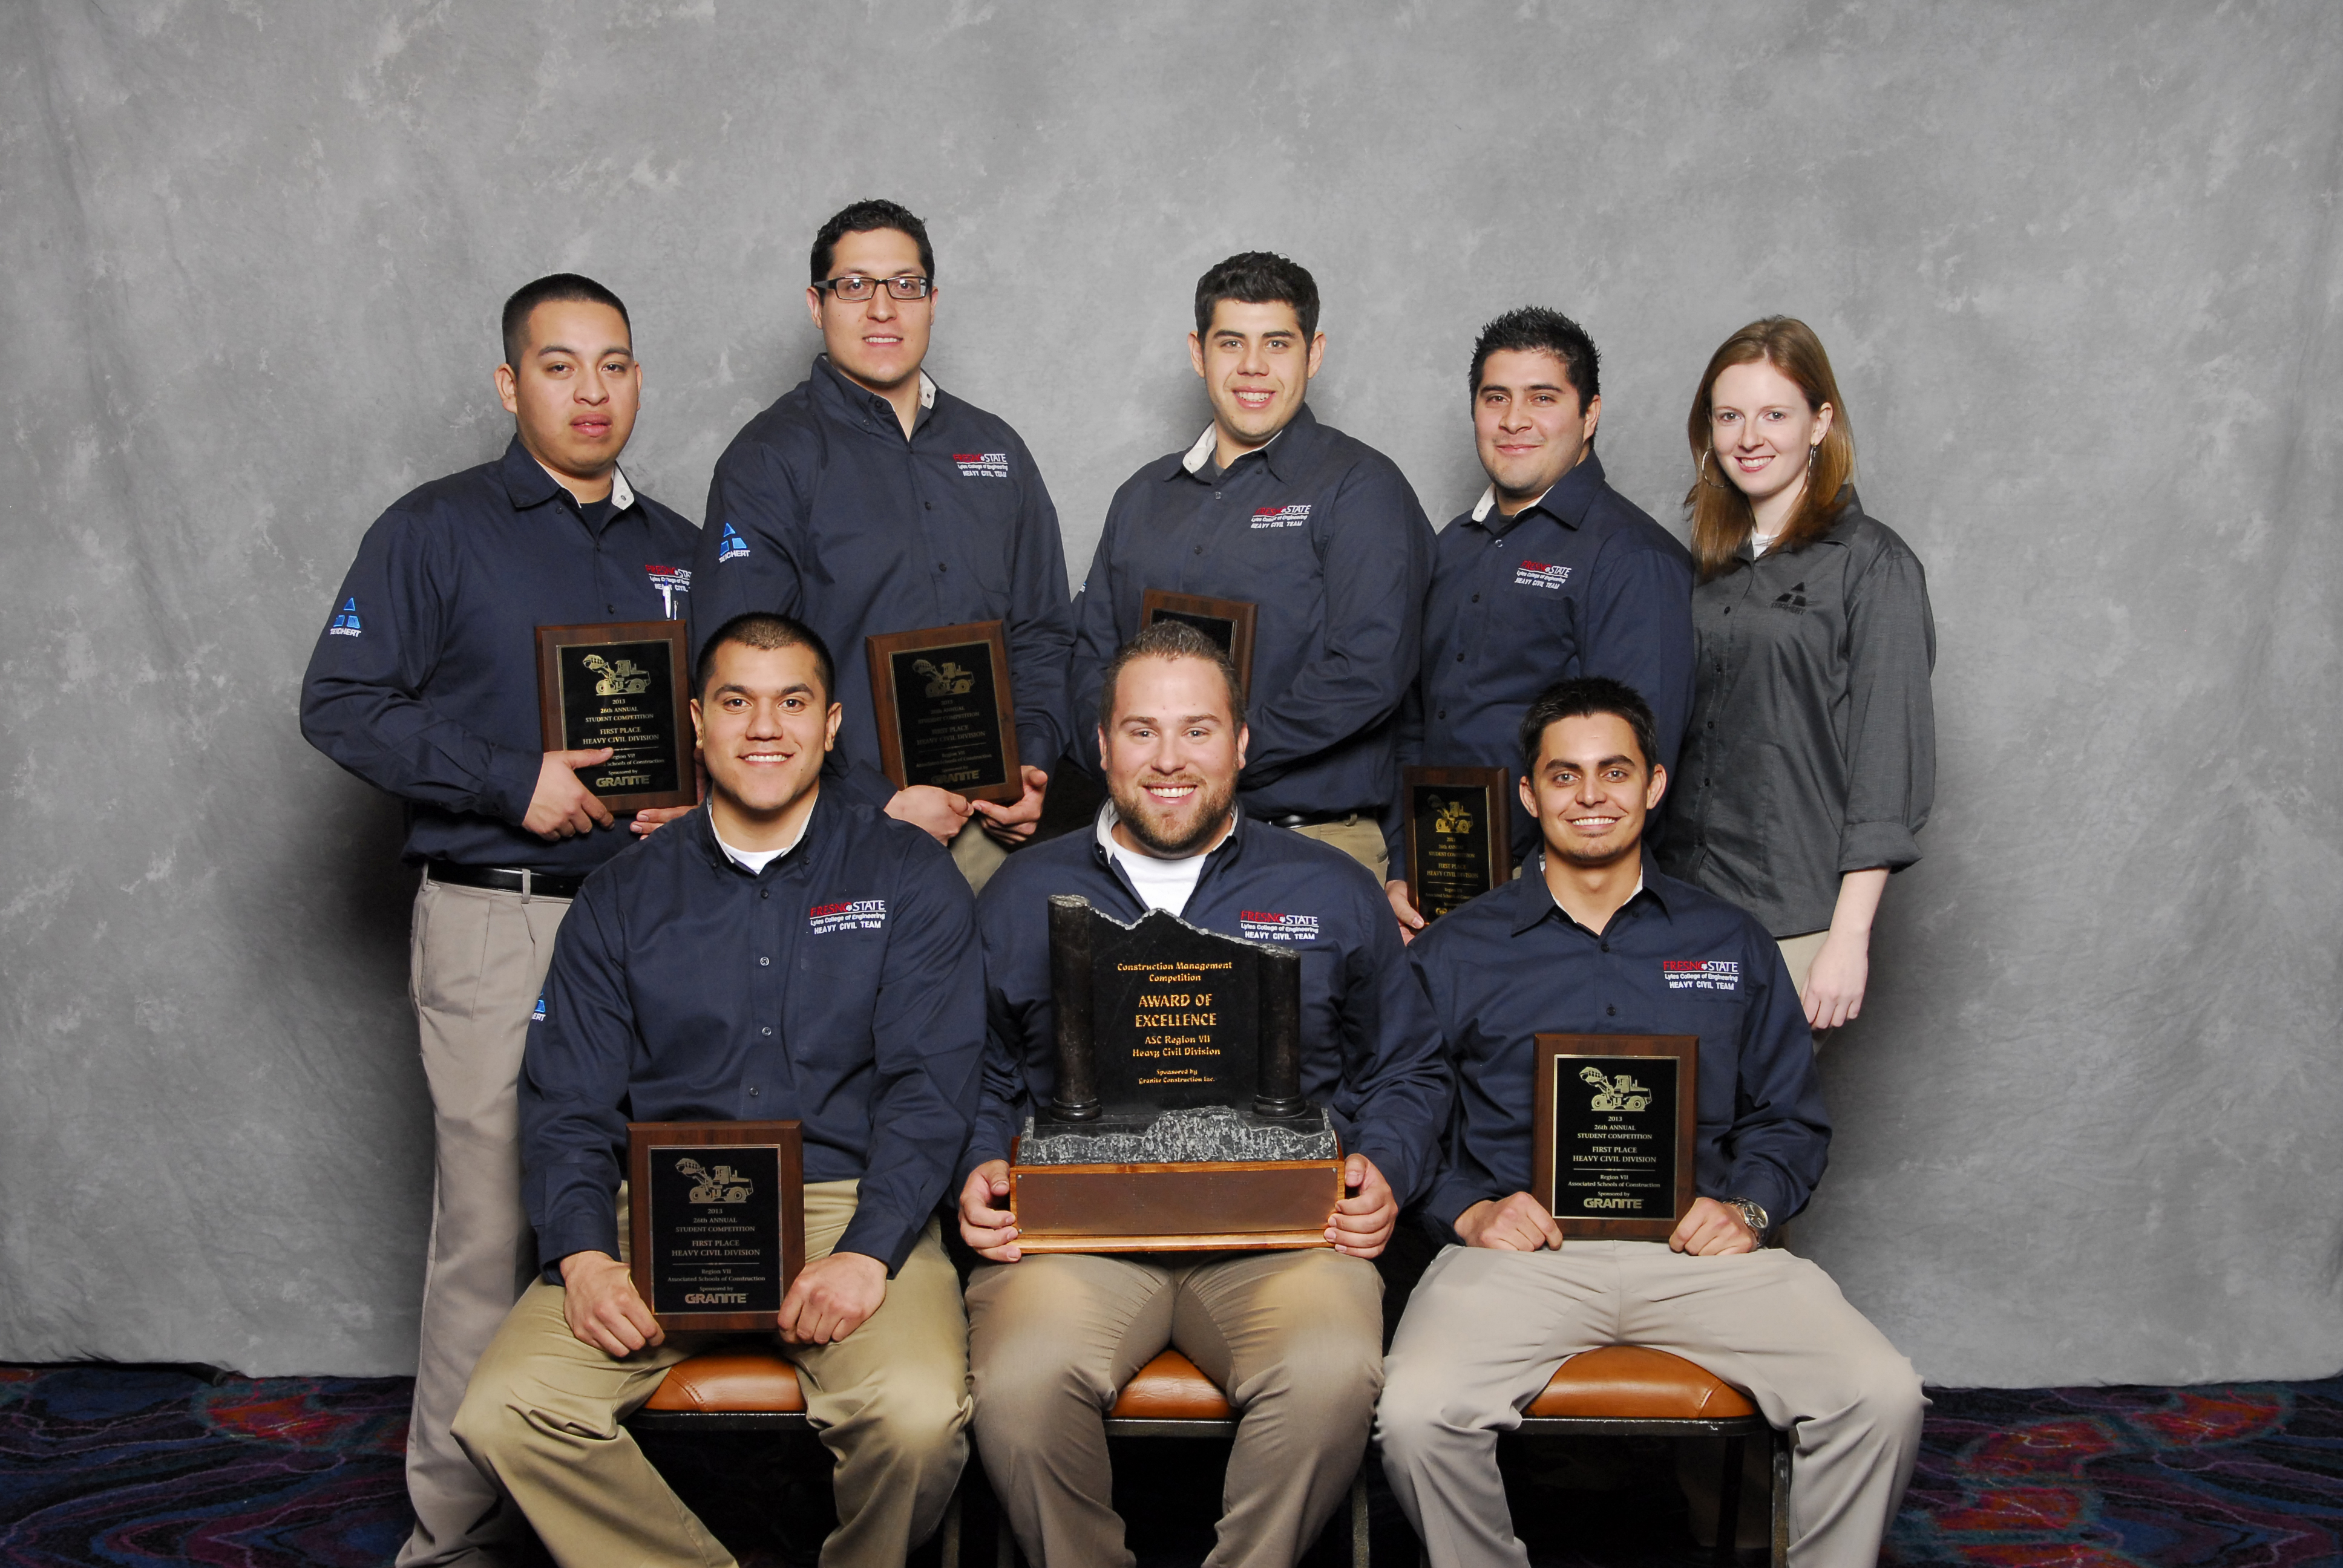 Fresno State Heavy Civil Team